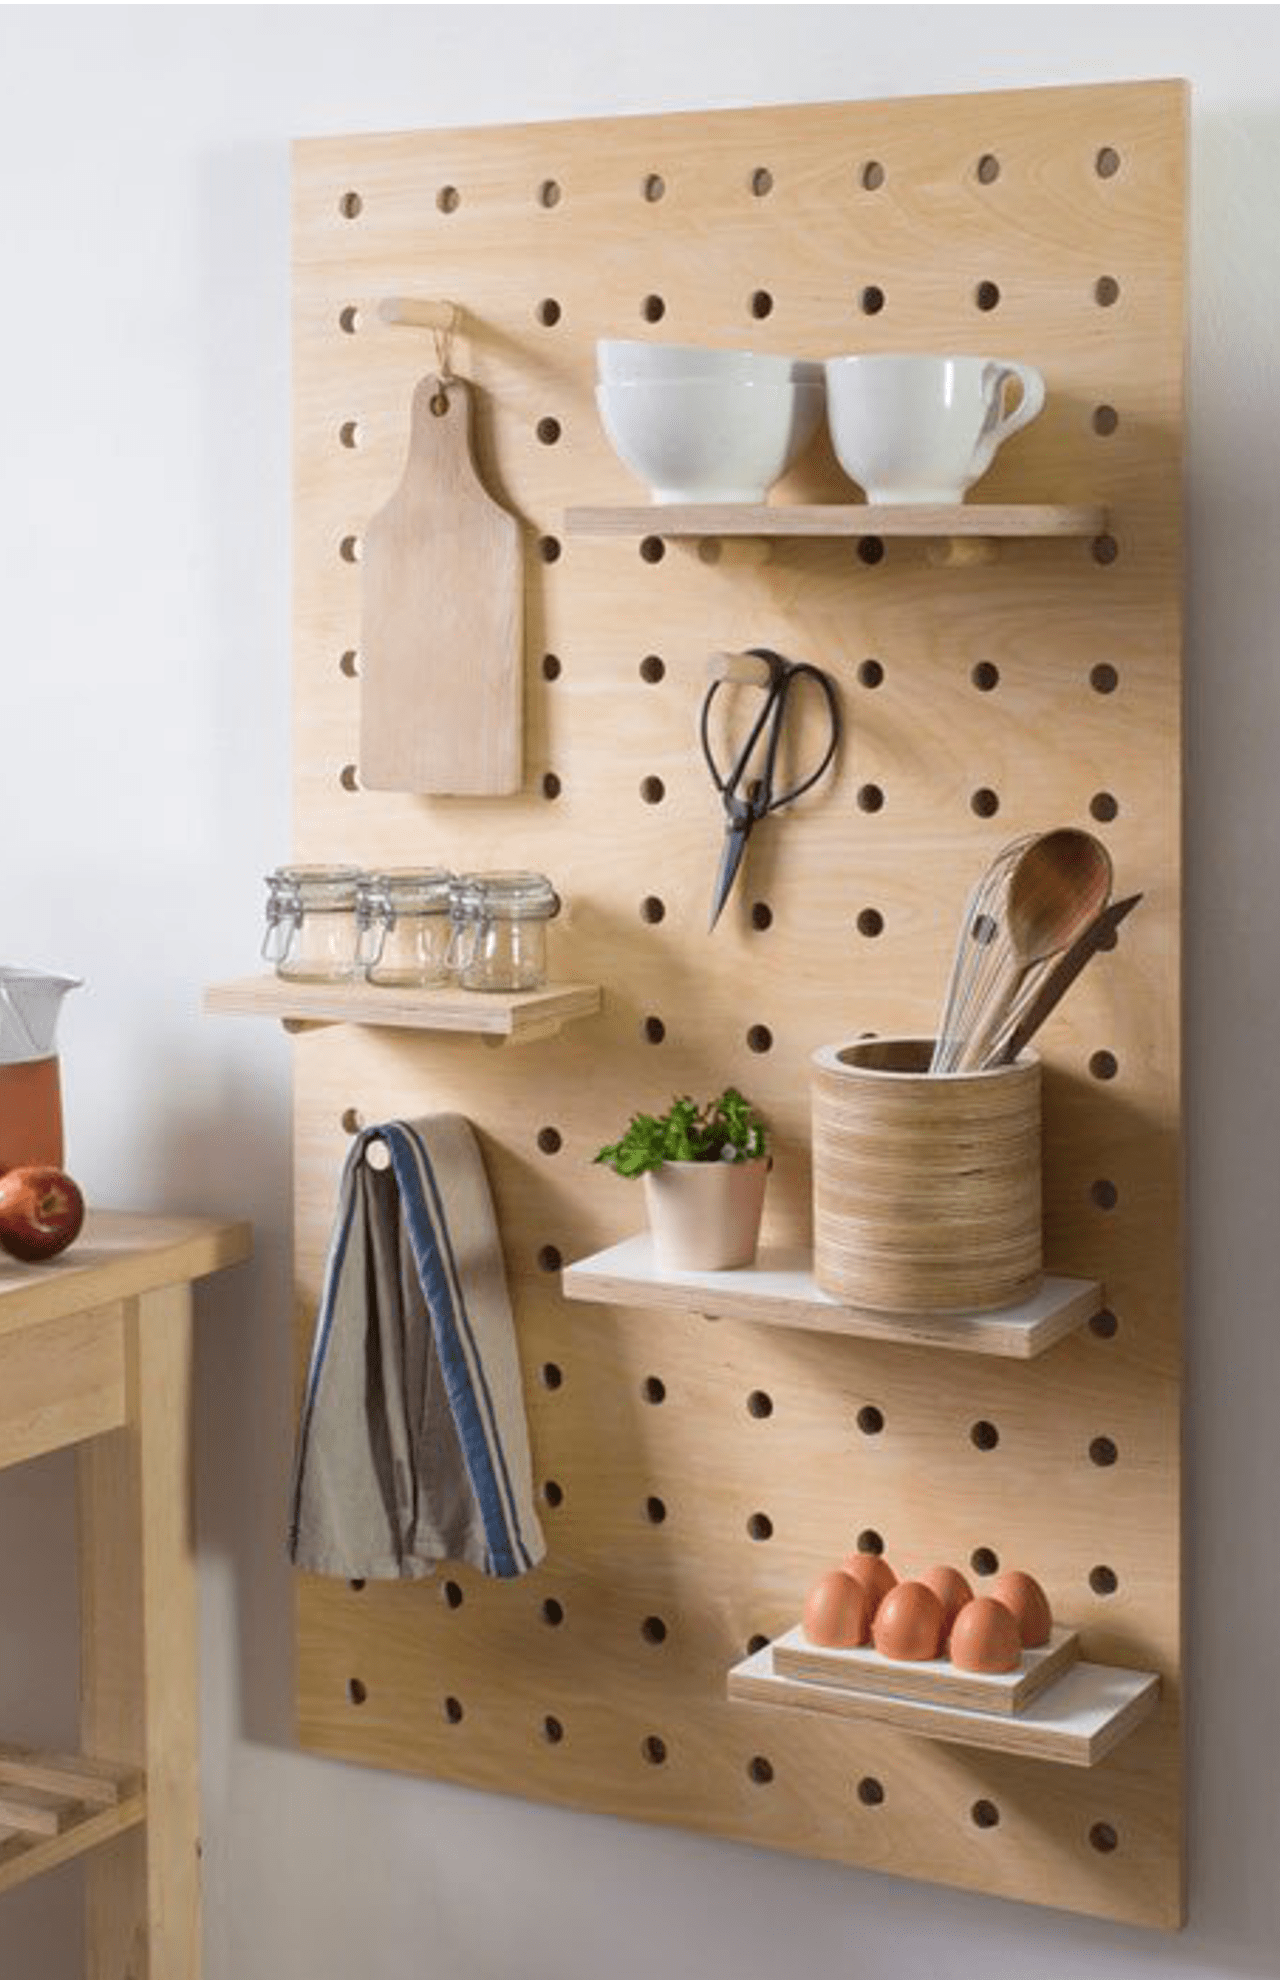 supports pleasant mount idea all cabinet pins clips shelf kitchen double pegs plastic